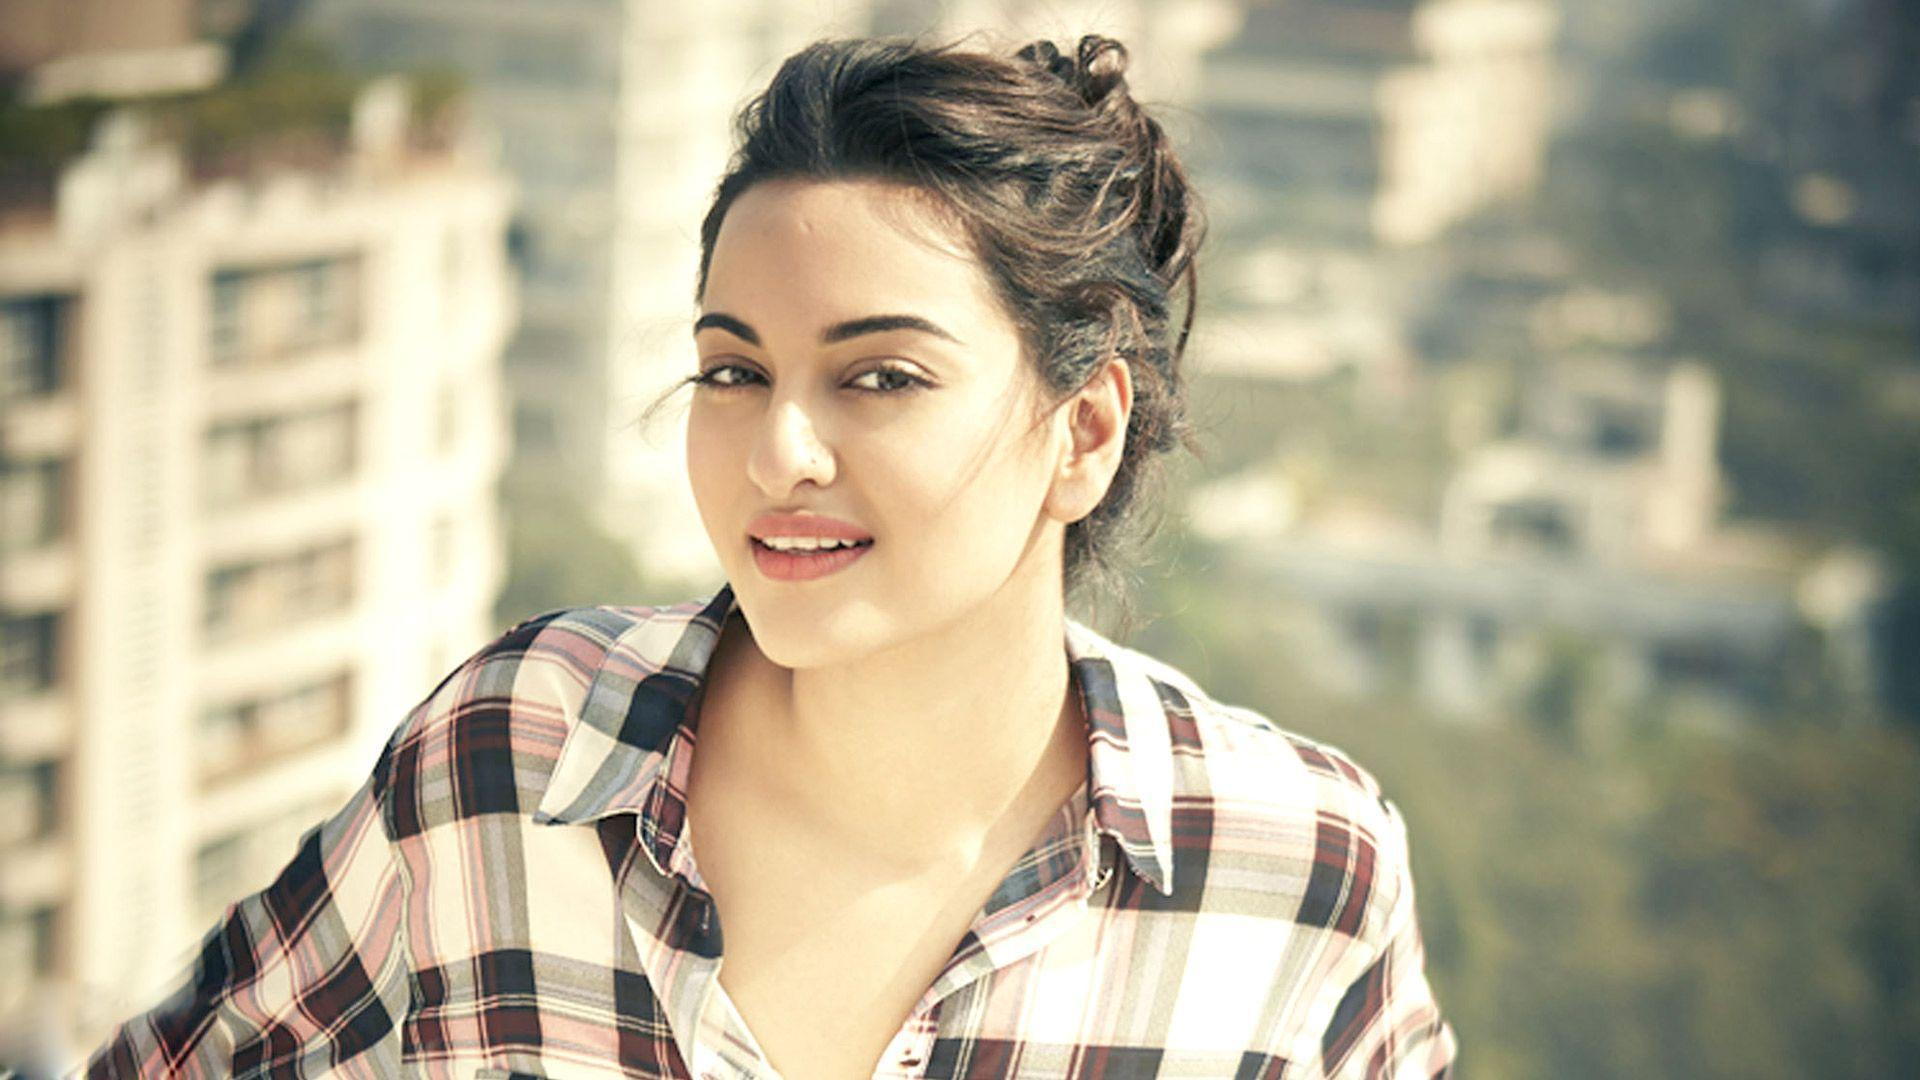 lates bollywood actress sonakshi sinha wallpaper 2017 bilqees